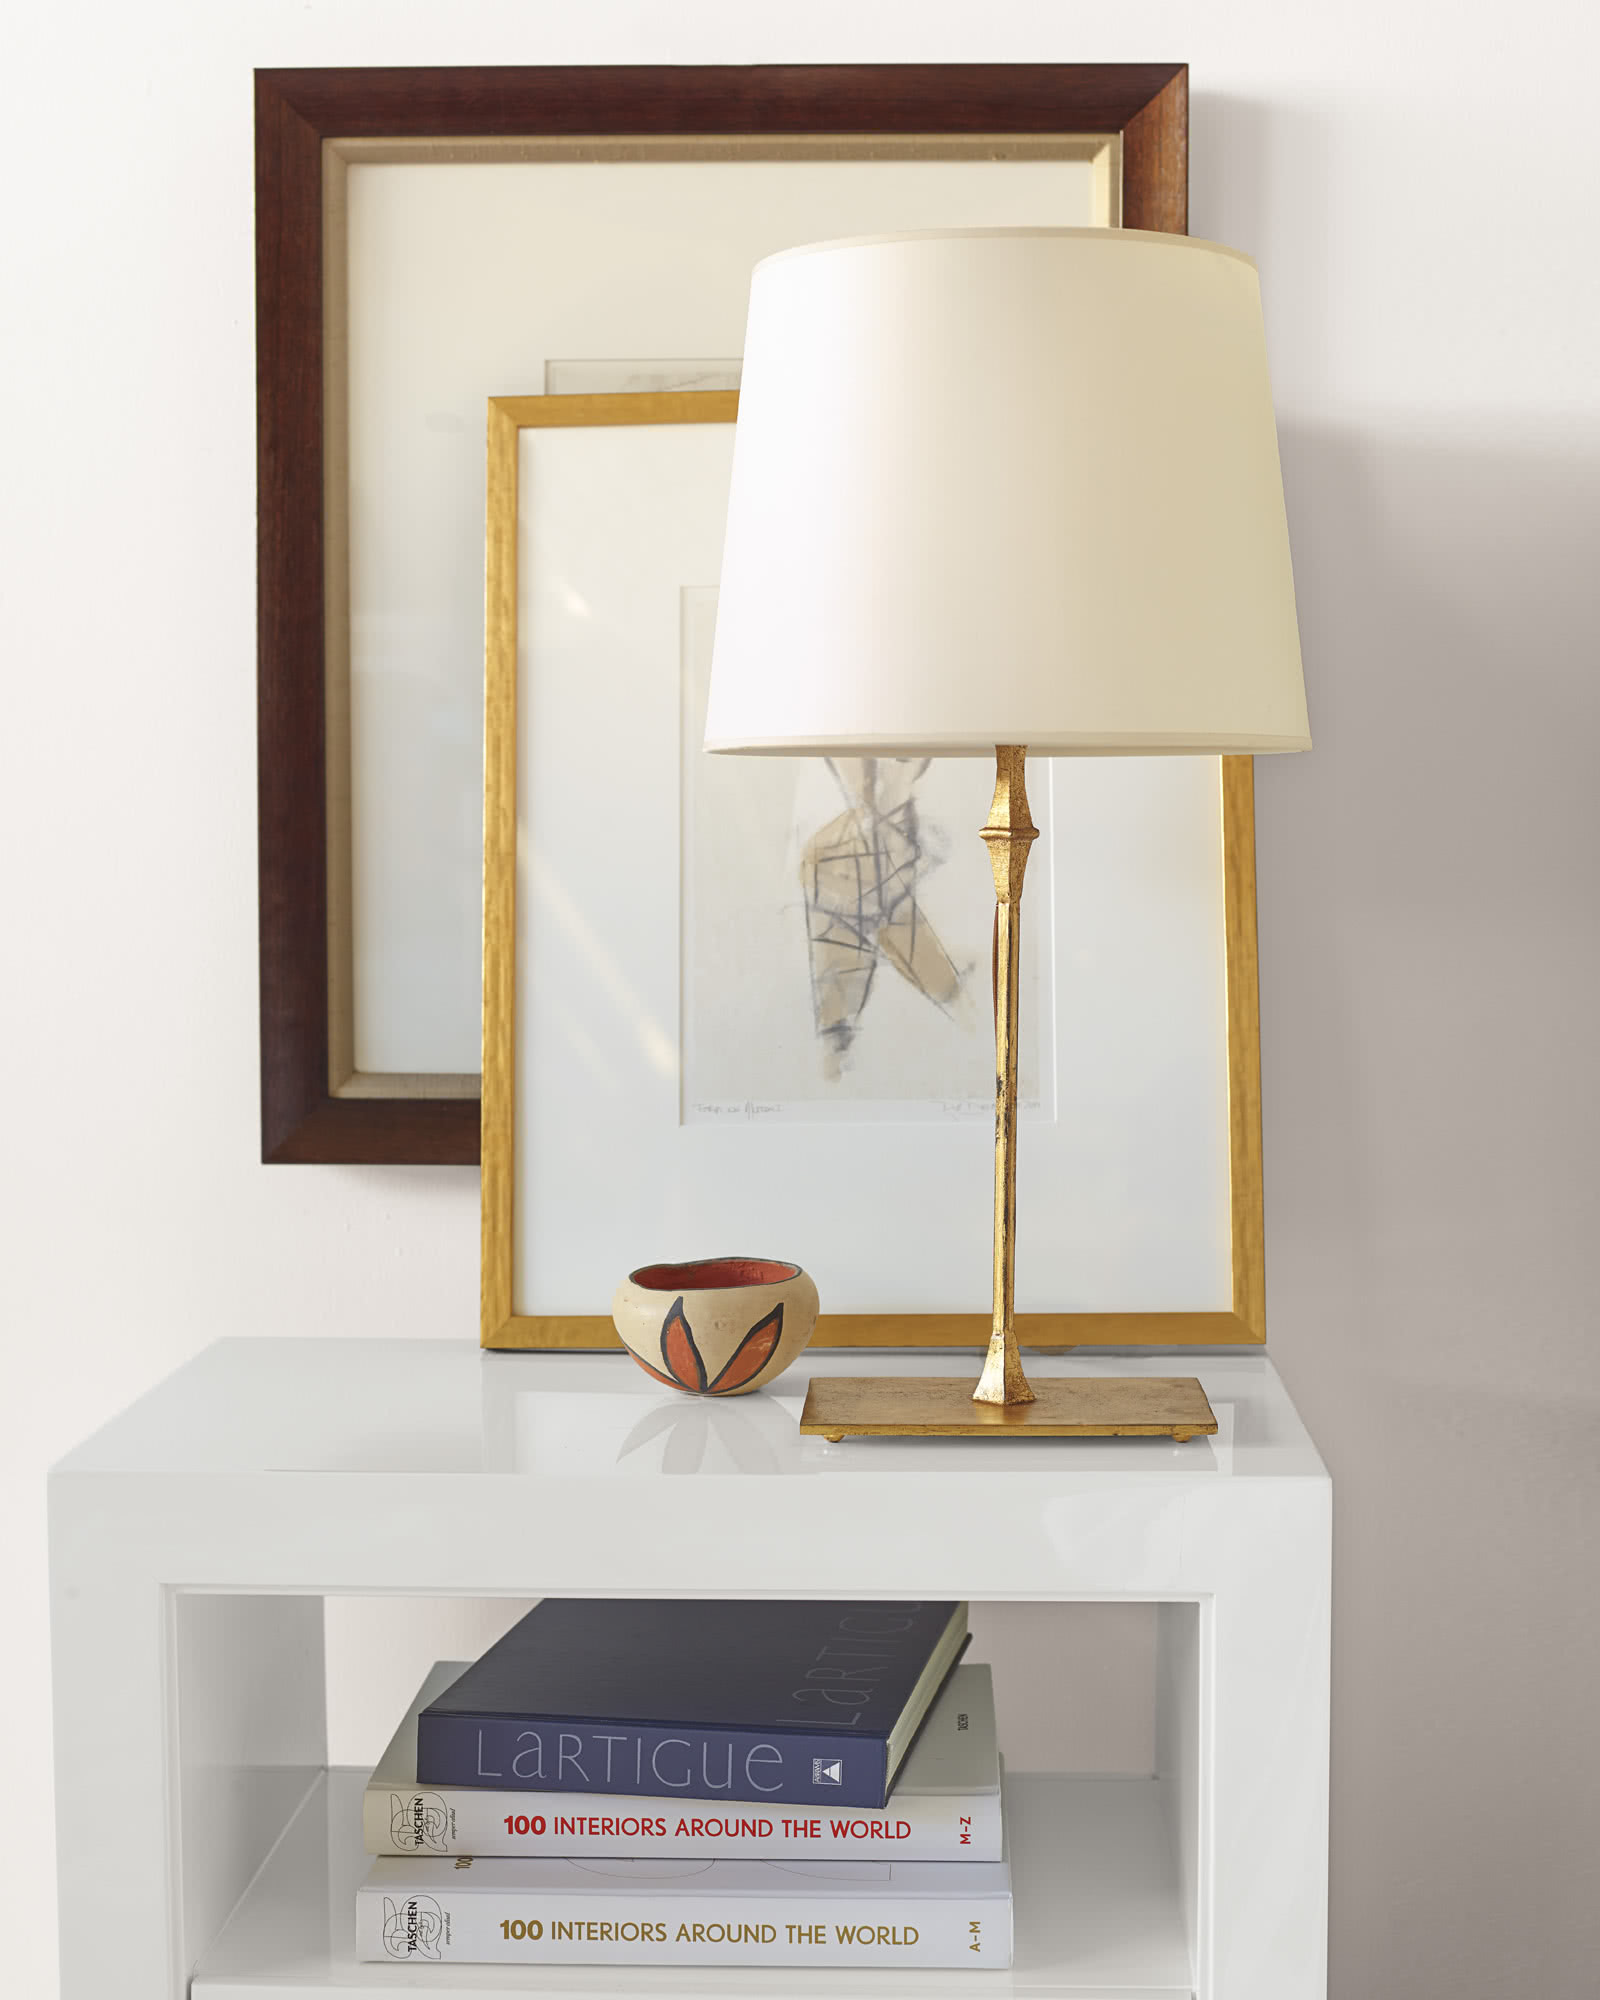 Dauphine table lamp lighting serena and lily aloadofball Choice Image